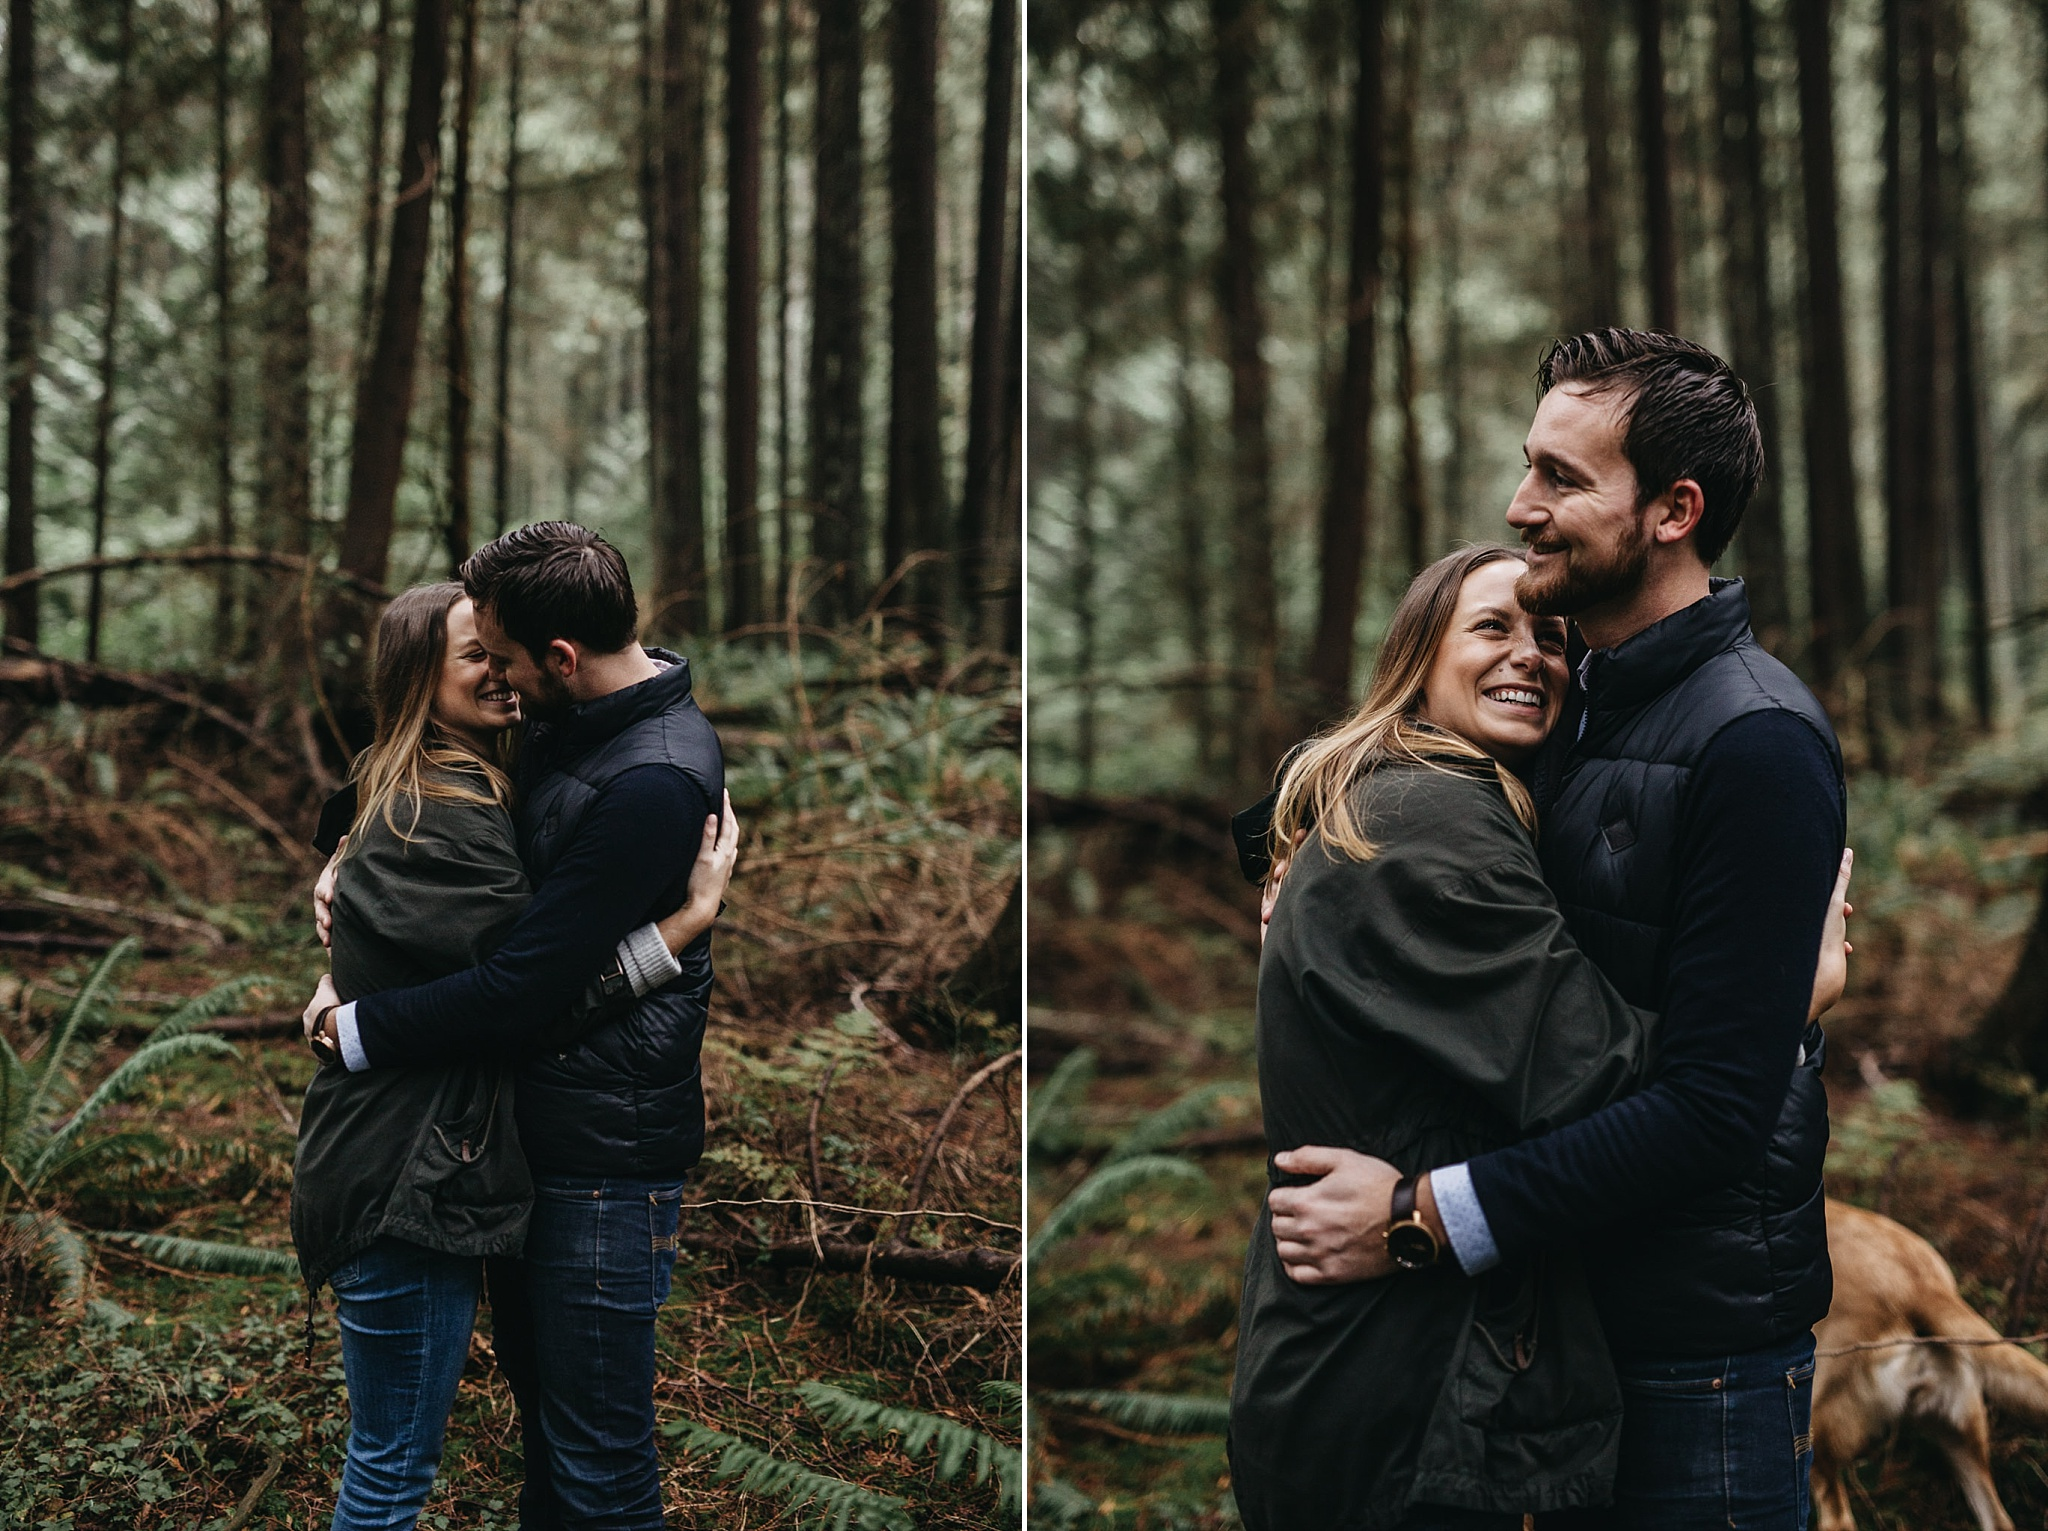 couple arms around each other engagement pacific spirit park forest